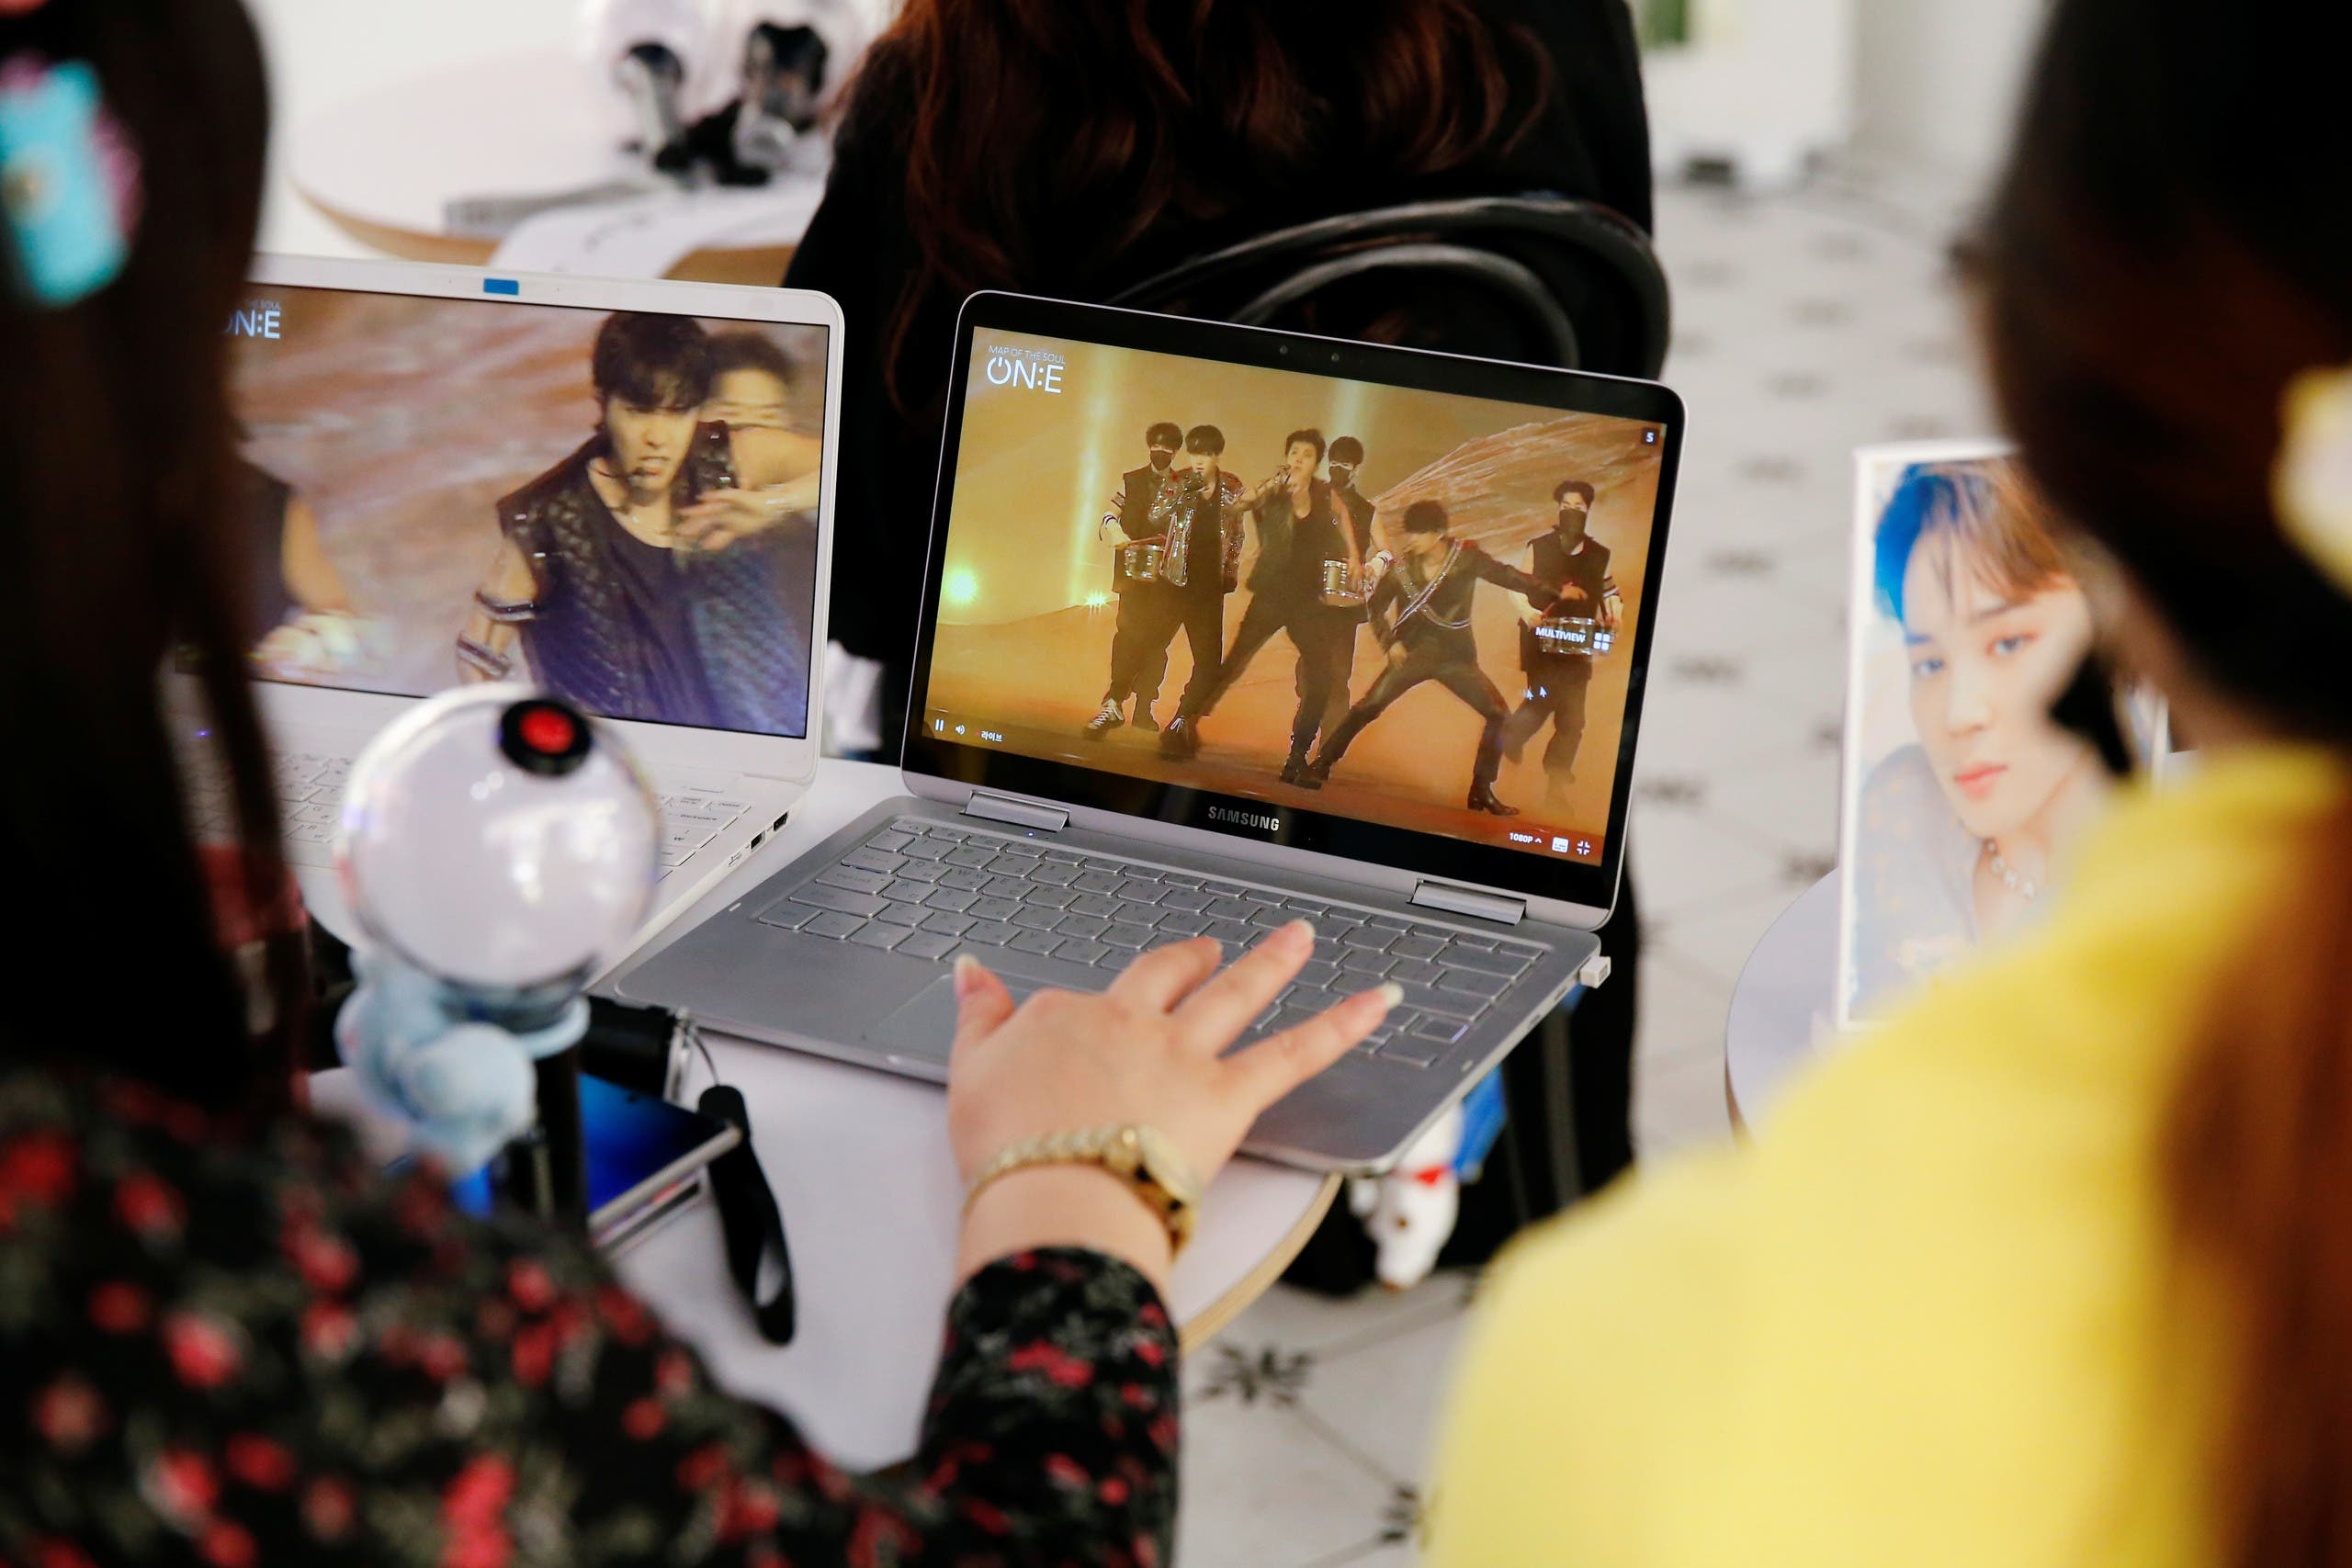 Fans of K-pop idol boy band BTS watch a live streaming online concert, wearing a protective masks to avoid the spread of the coronavirus disease (COVID-19), at a cafe in Seoul, South Korea October 10, 2020. REUTERS/Heo Ran